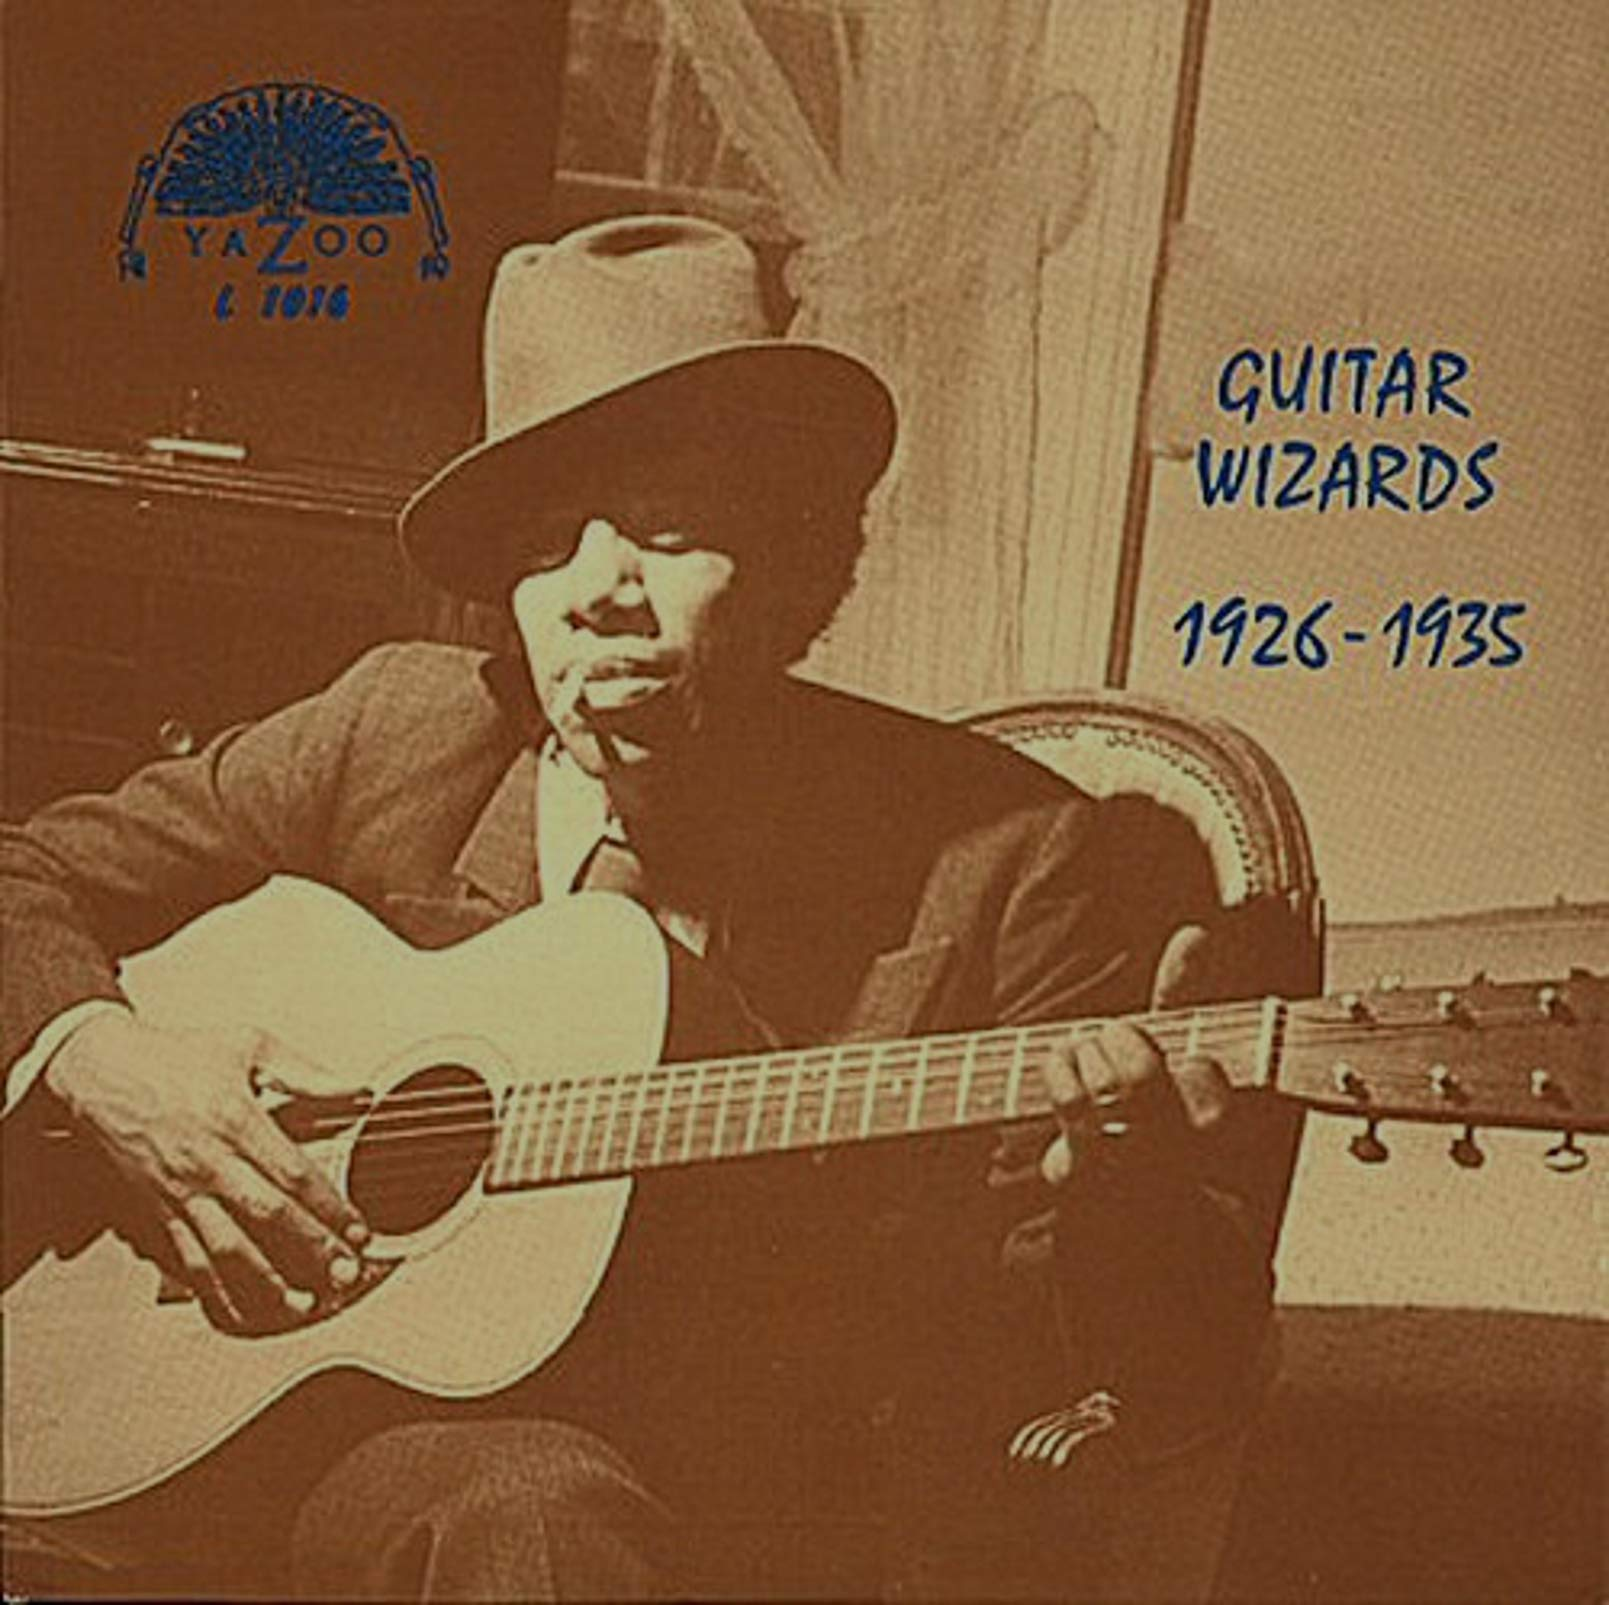 GUITAR WIZARDS 1926 - 1935 by YAZOO RECORDS